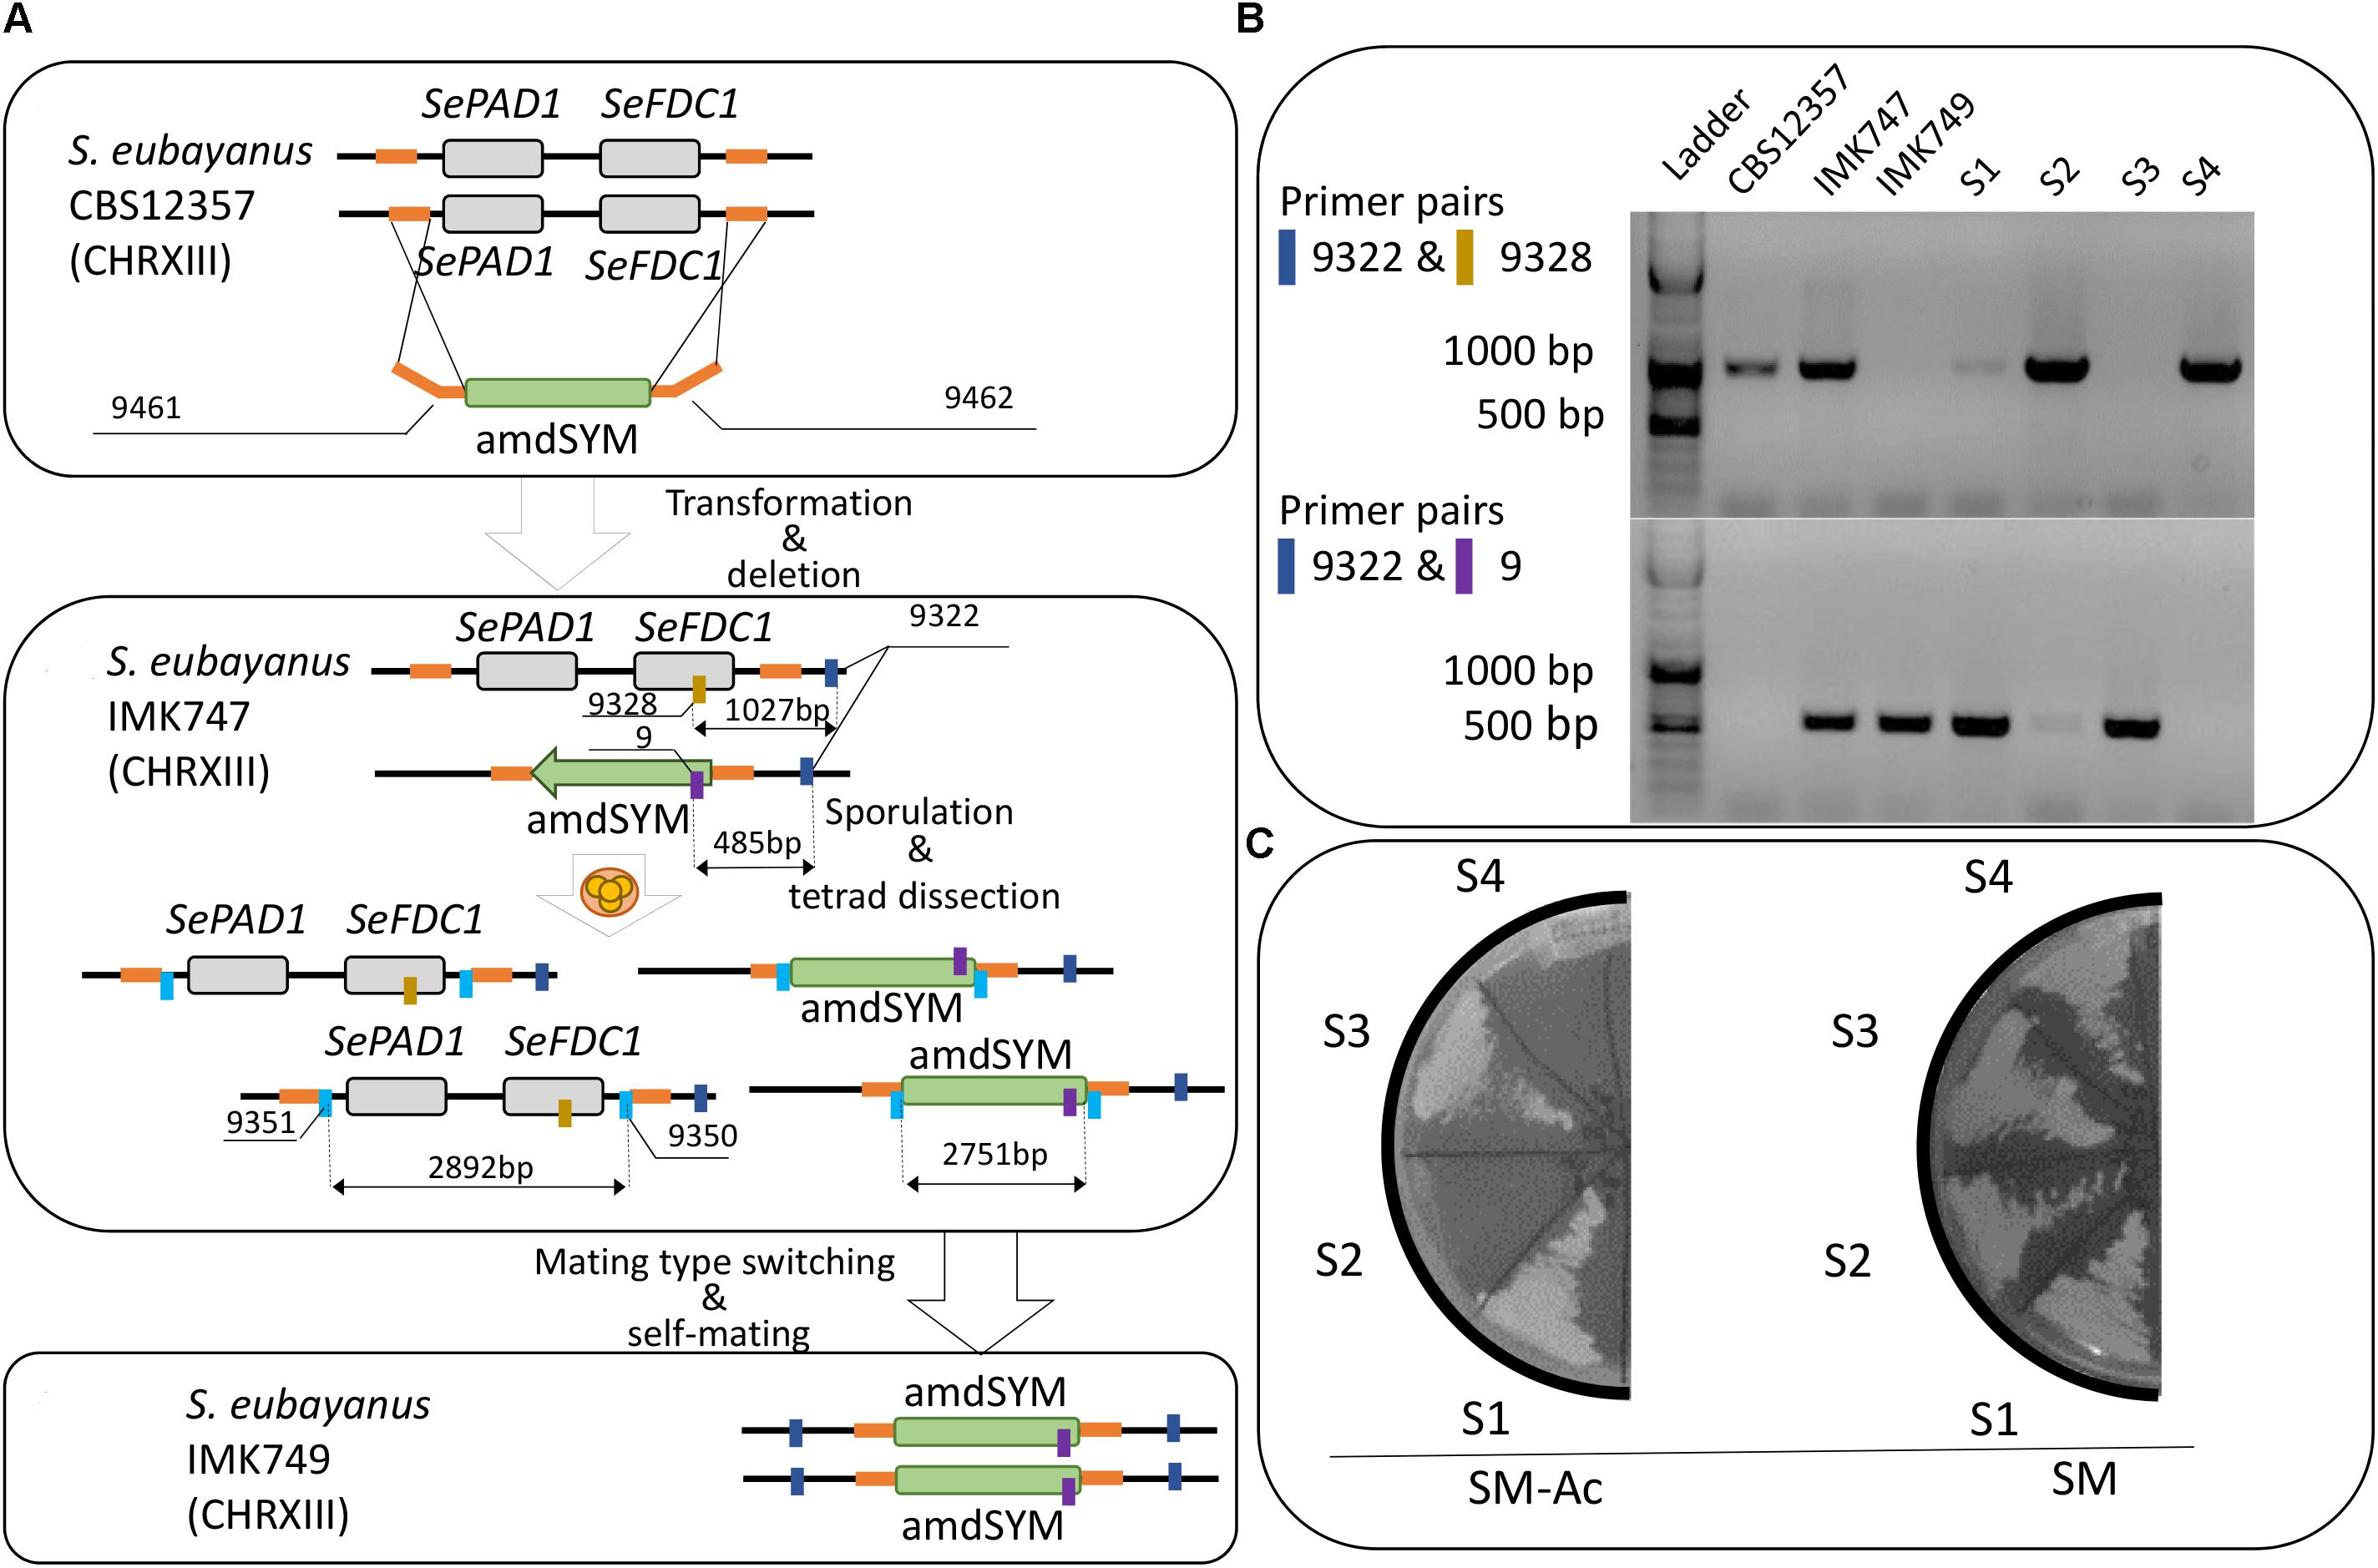 Frontiers | Selection of Pof-Saccharomyces eubayanus Variants for